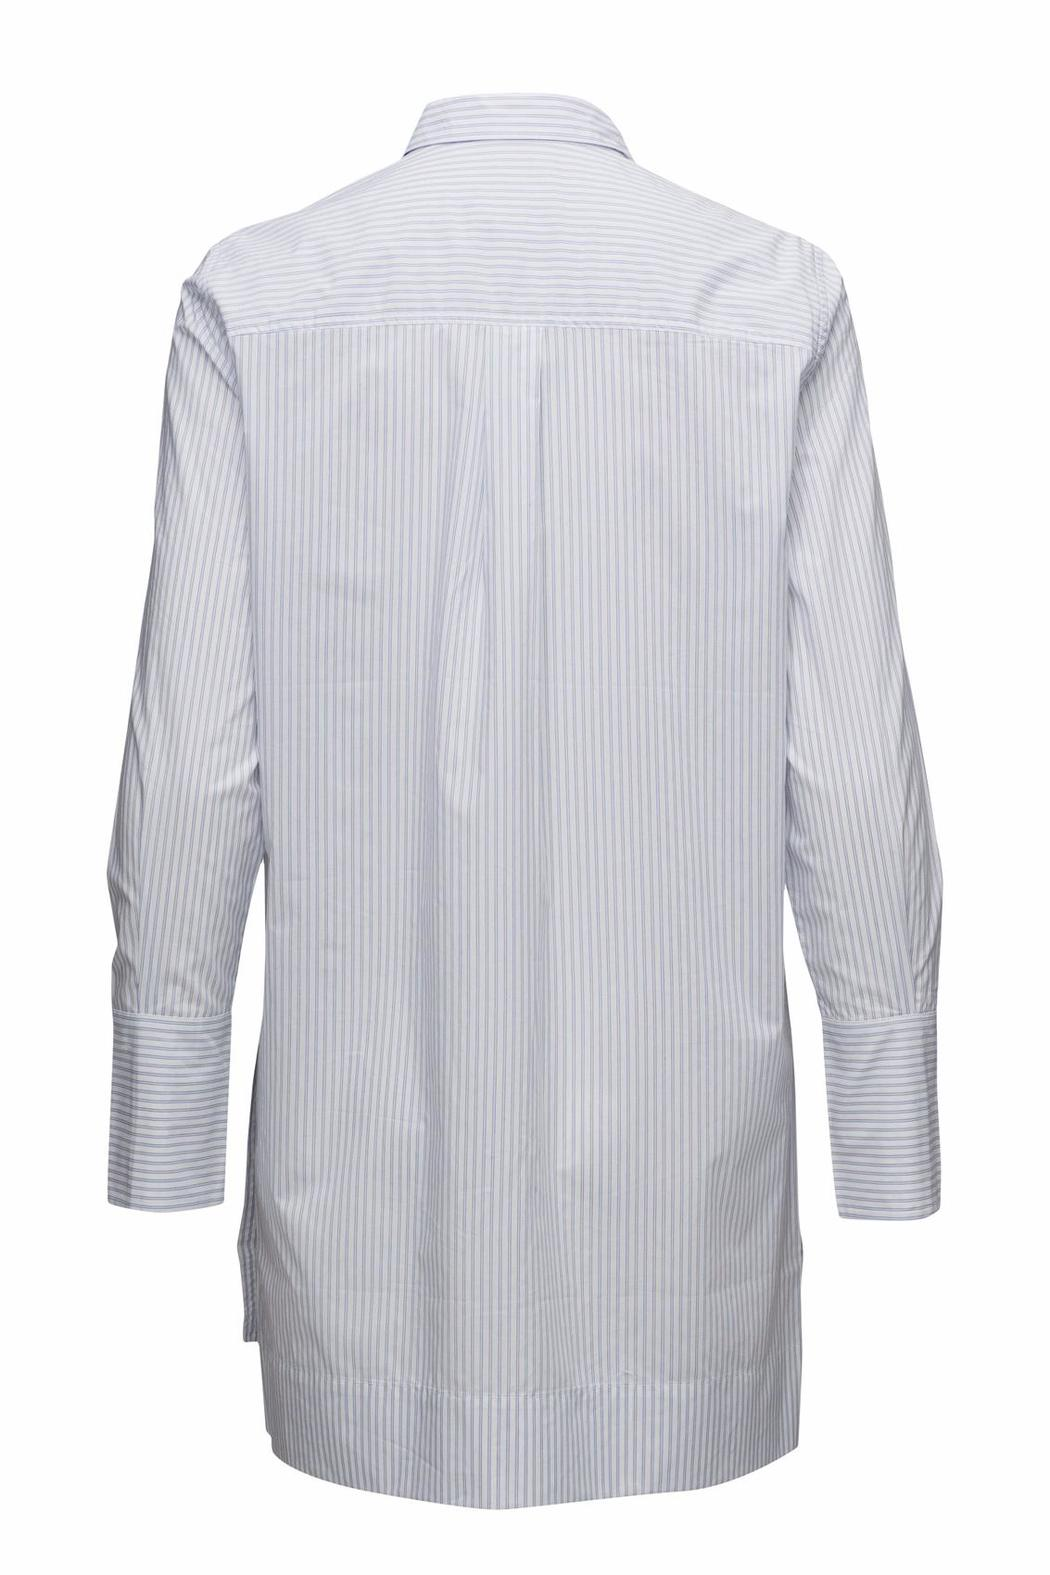 Inwear Blue Striped Shirt - Front Full Image